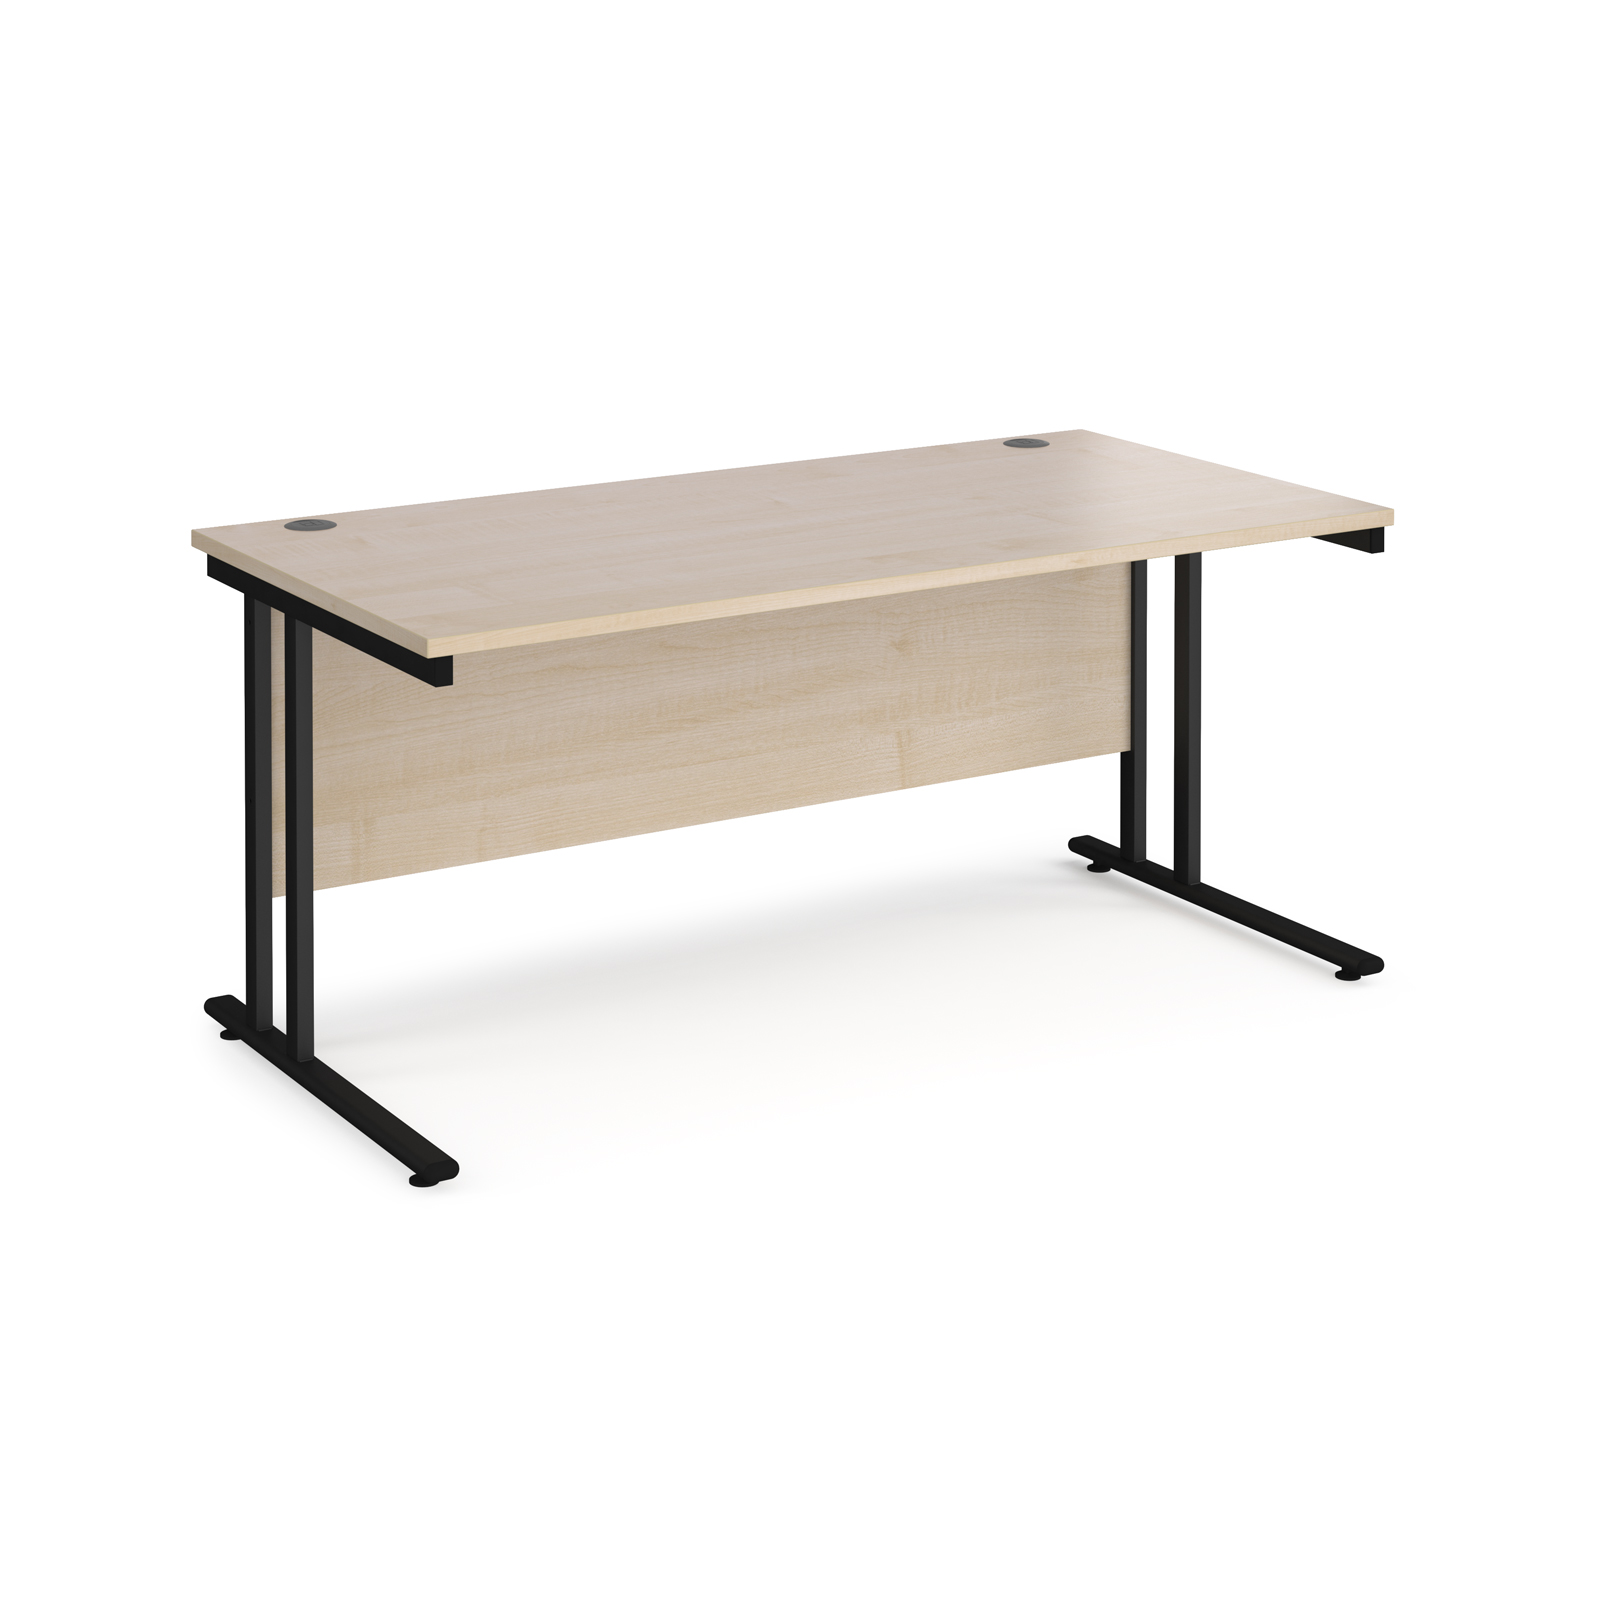 Maestro 25 straight desk 1600mm x 800mm - black cantilever leg frame, maple top